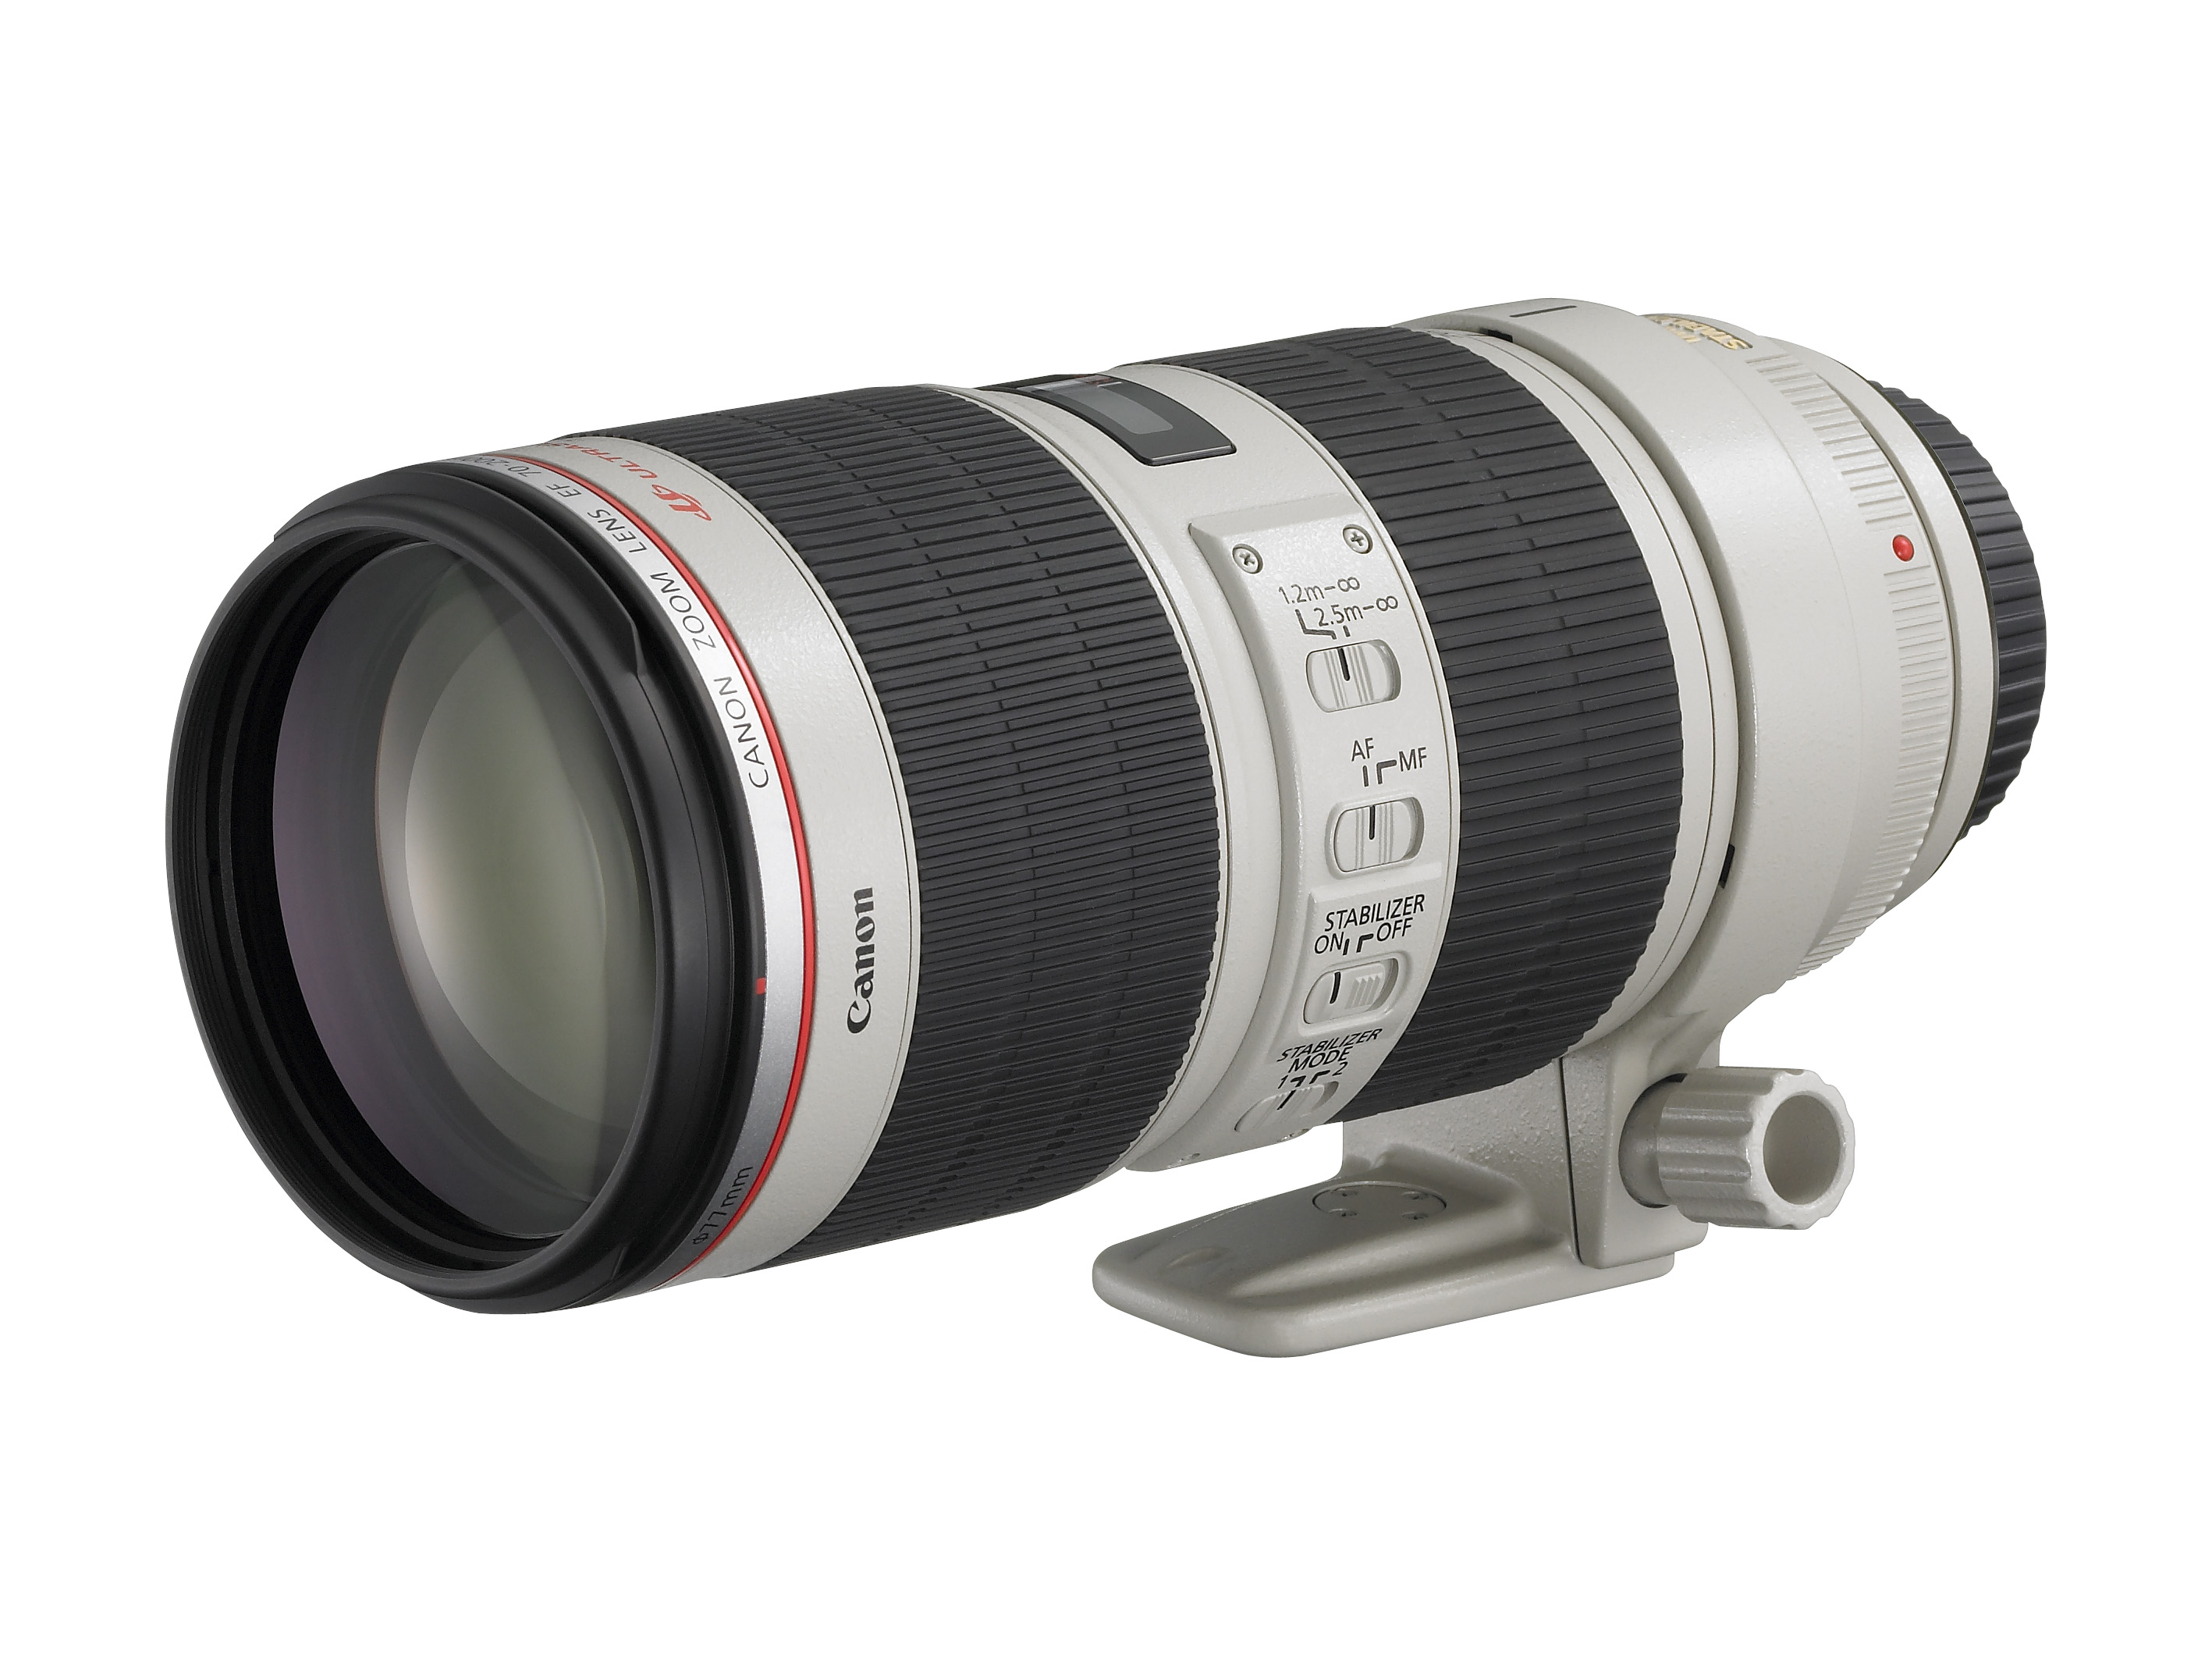 CANON EF 70-200 mm F/2.8 L IS II USM Telephoto Zoom Lens